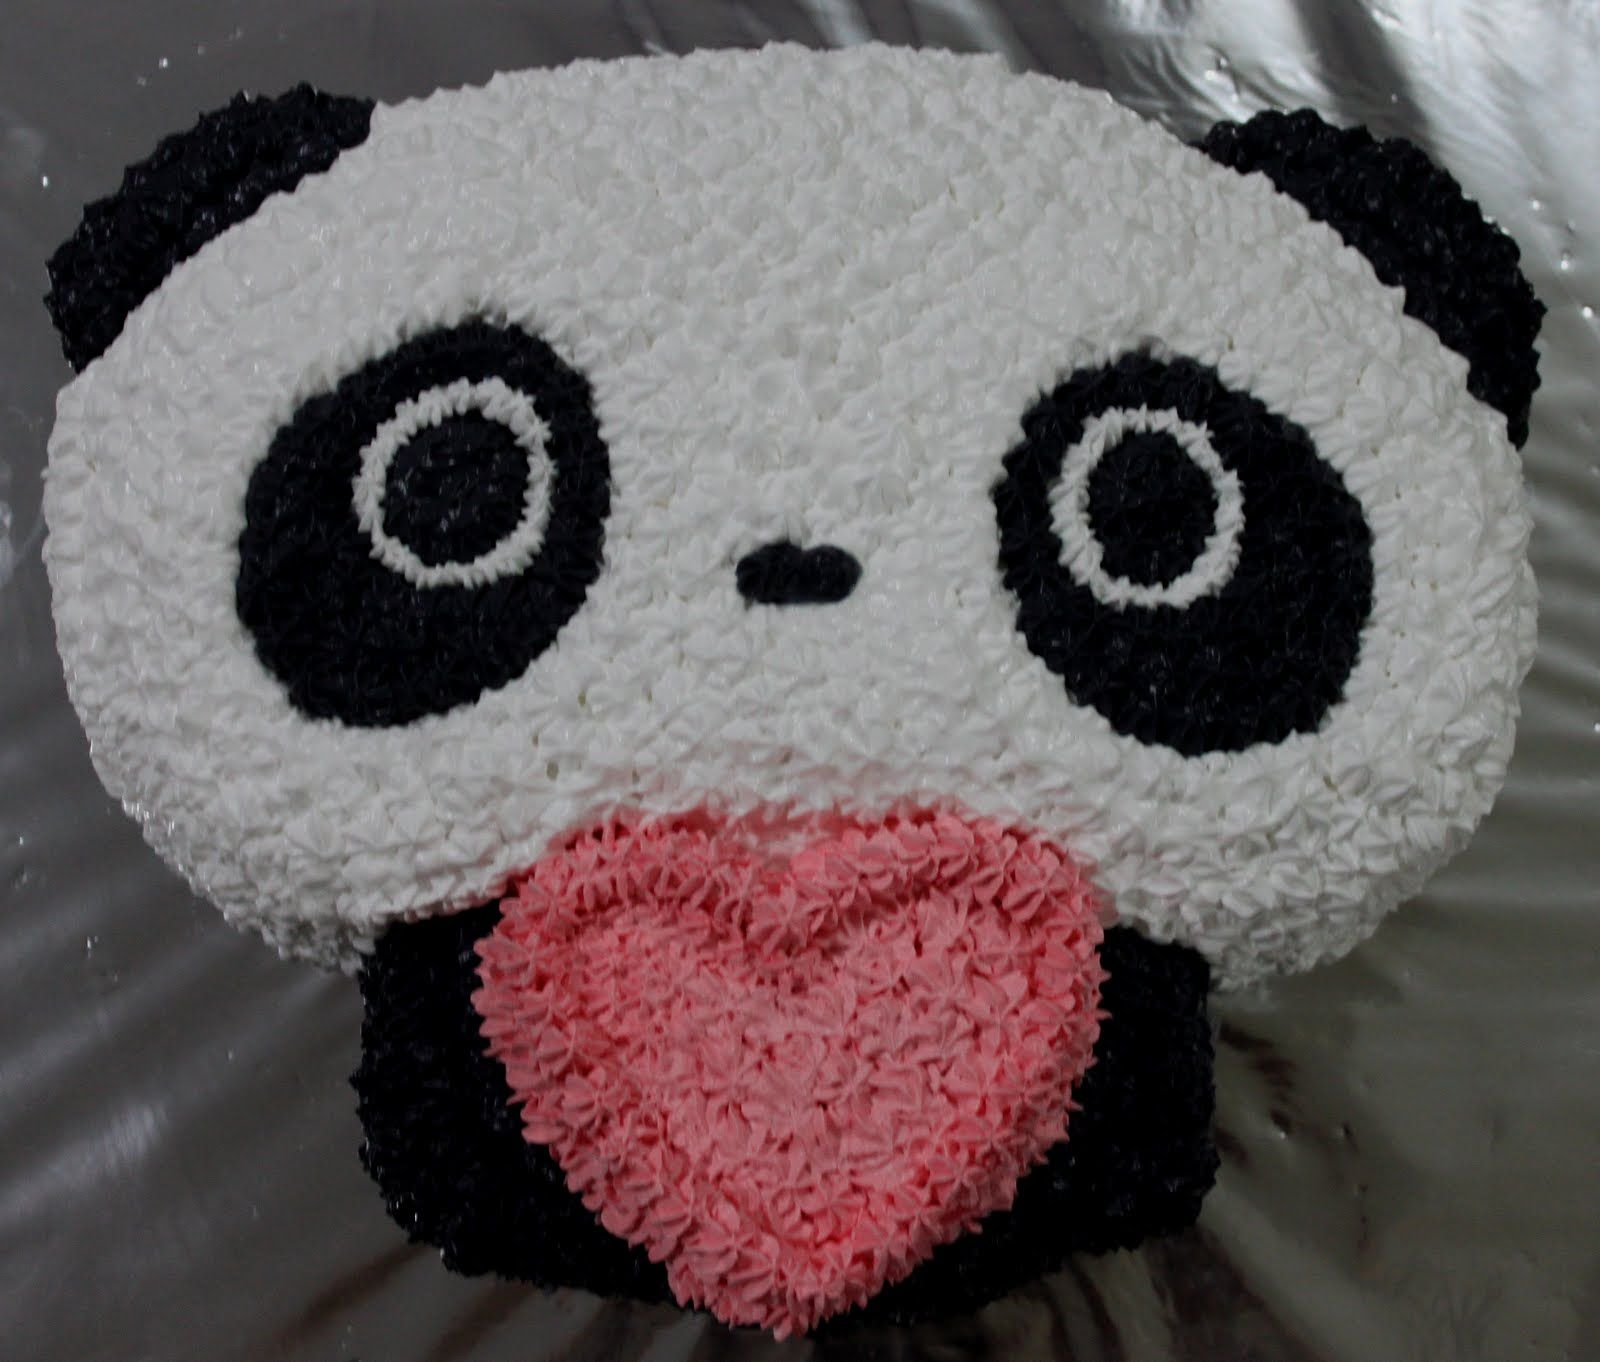 Pin Inspired Bakes Tare Panda Cake Picture To Pinterest